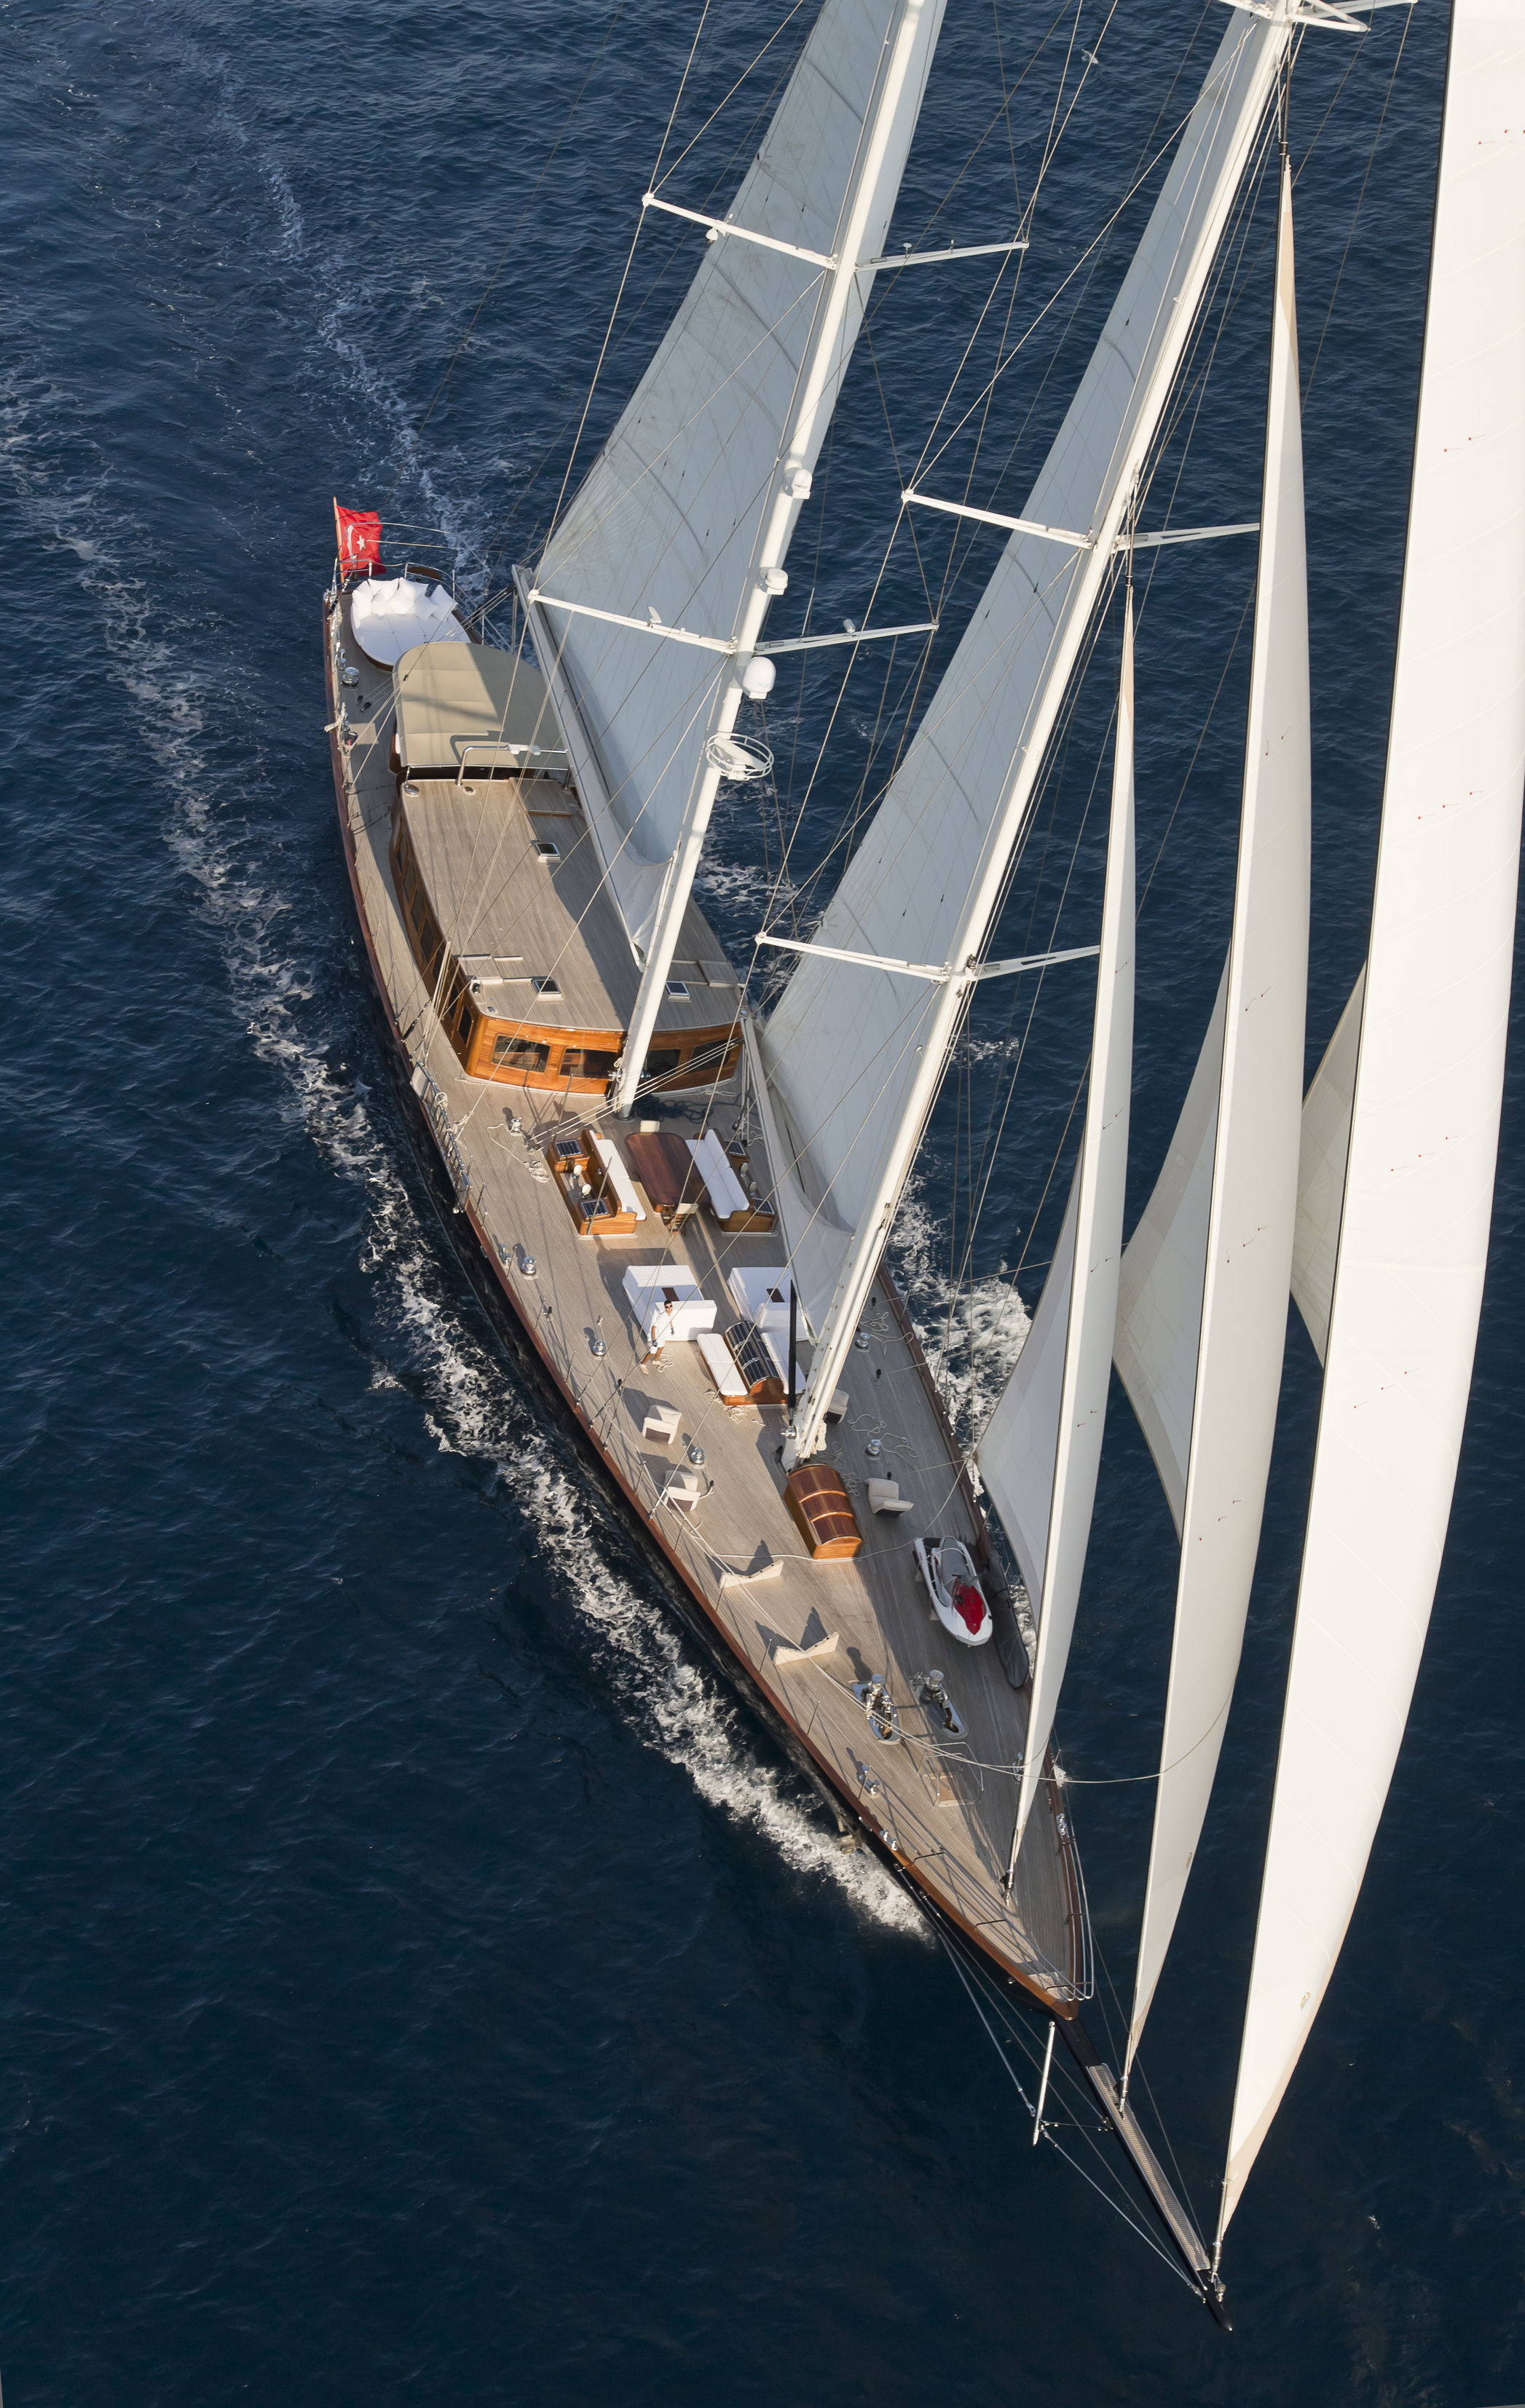 Discussion on this topic: The James Bond Skyfall Yacht Can Now , the-james-bond-skyfall-yacht-can-now/